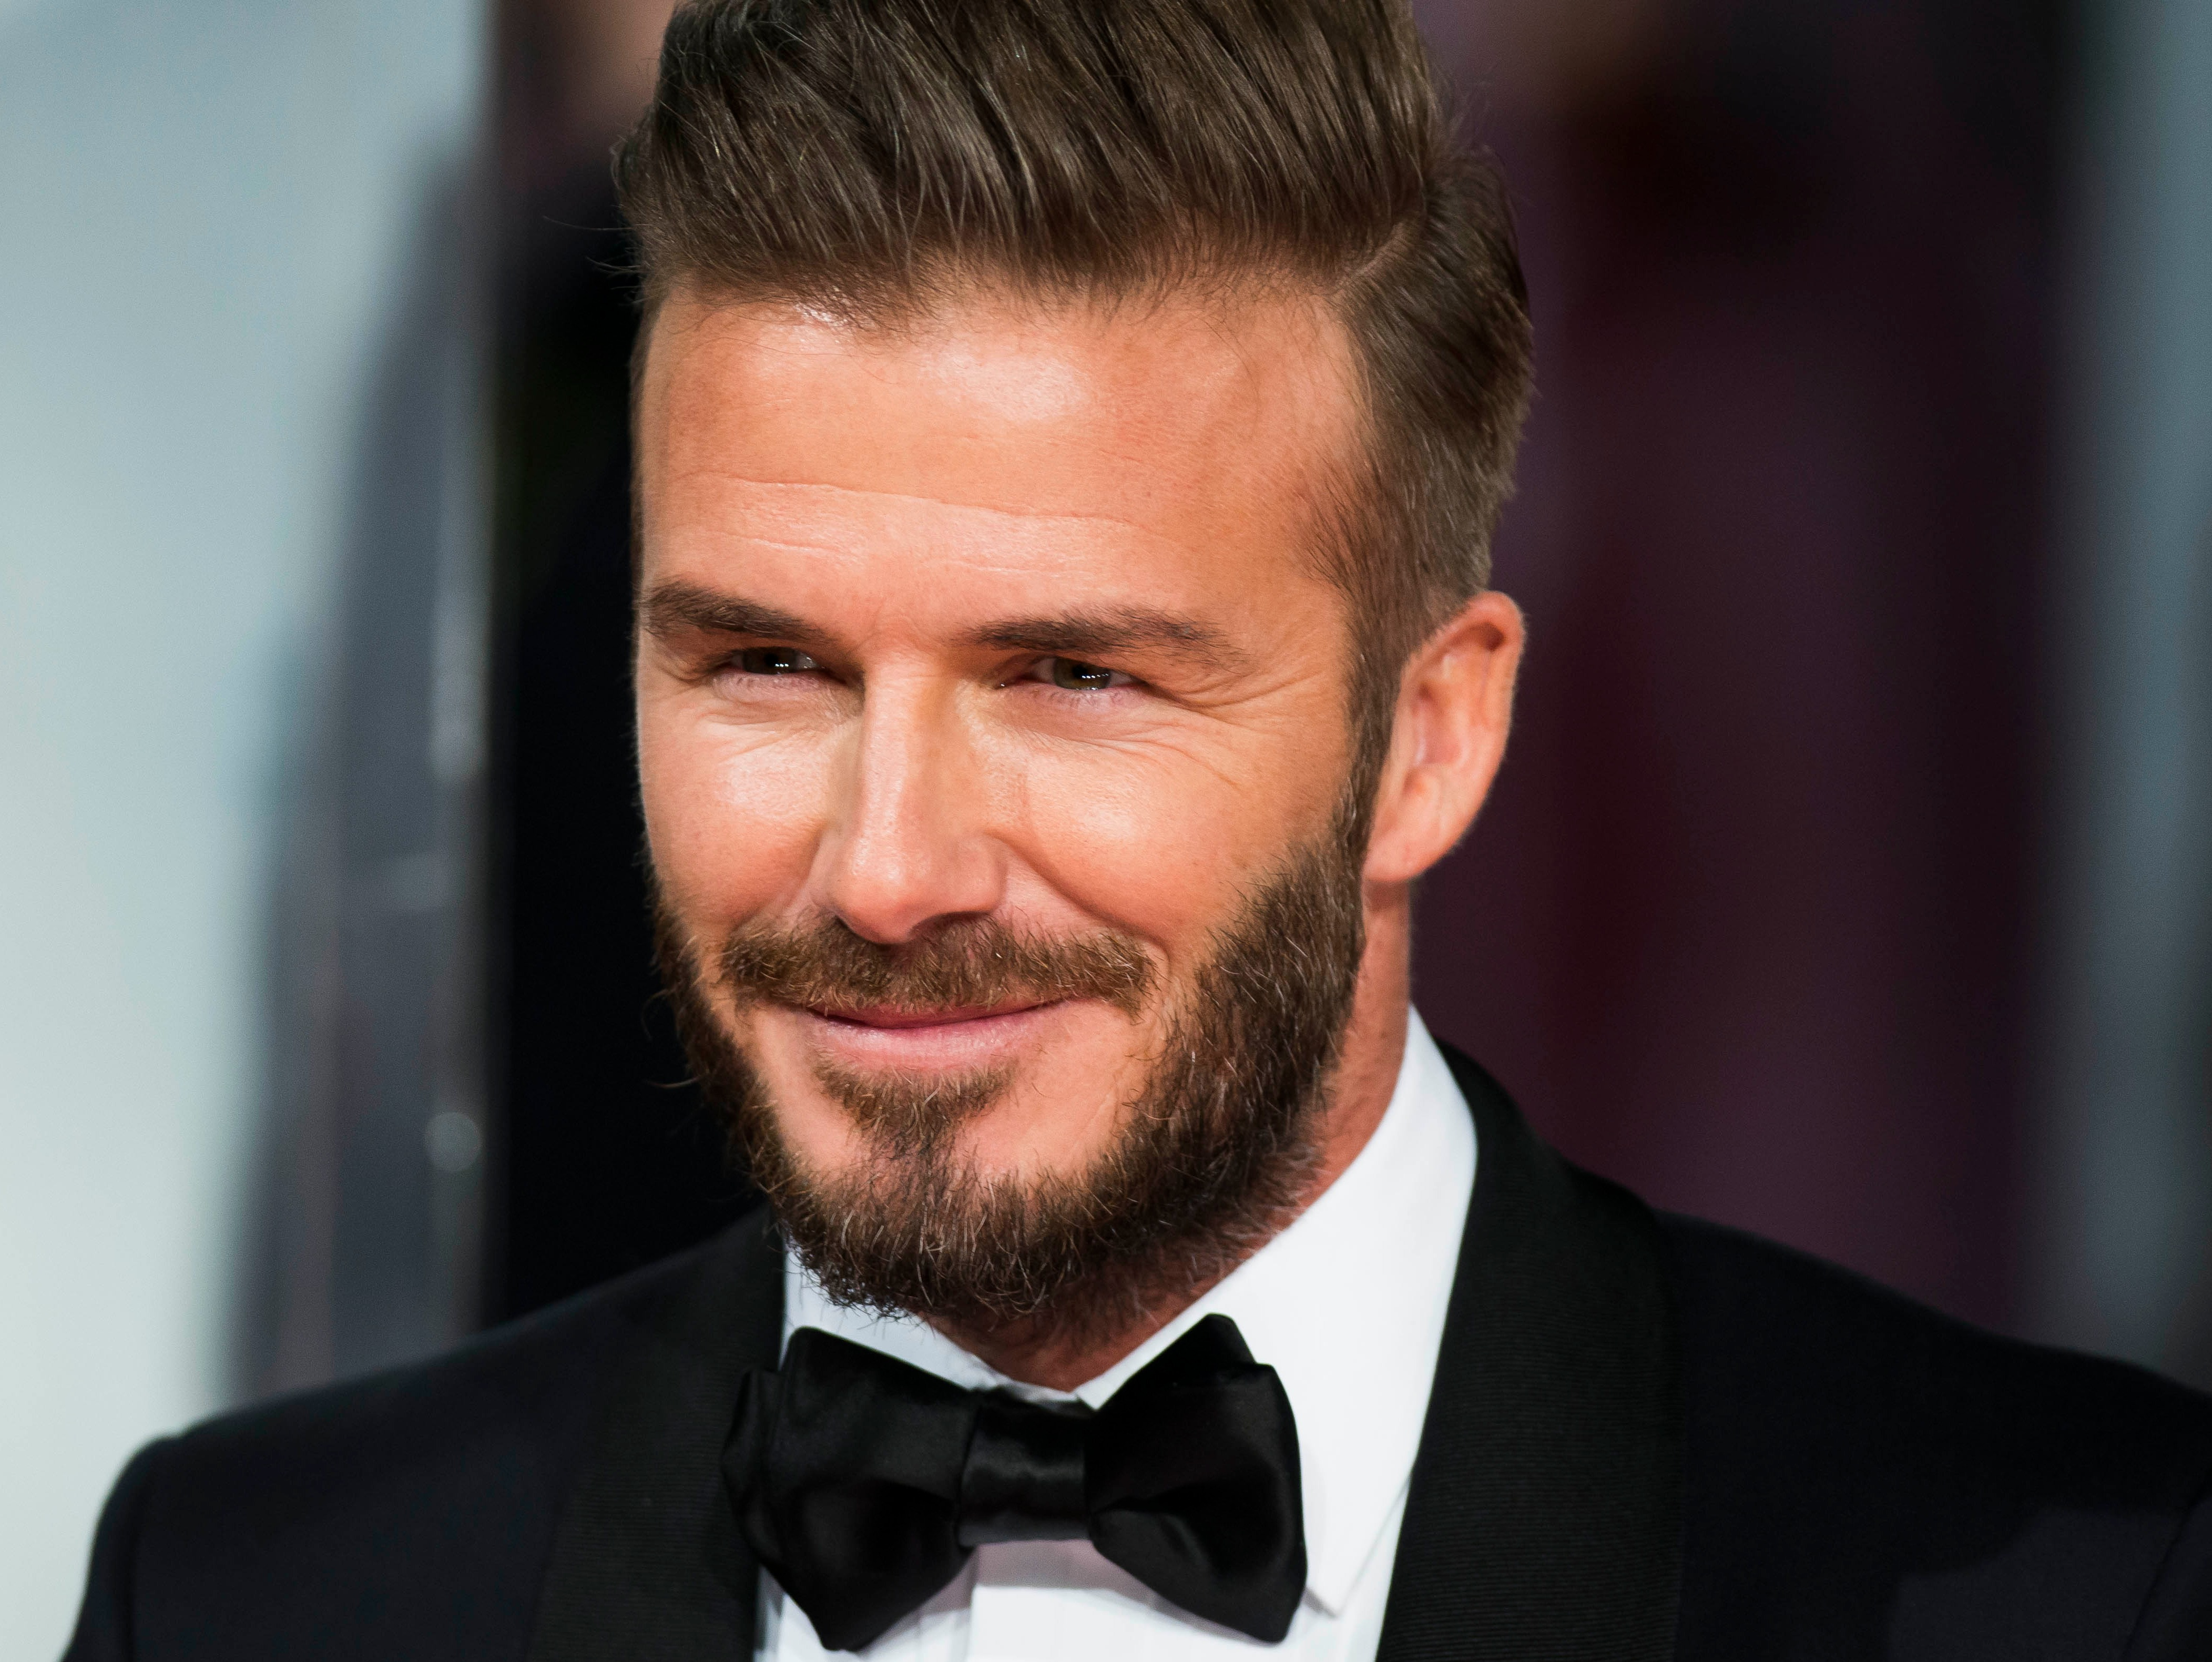 David beckham has 39 promising career as an actor 39 says his pal guy ritchie itv news for David beckham